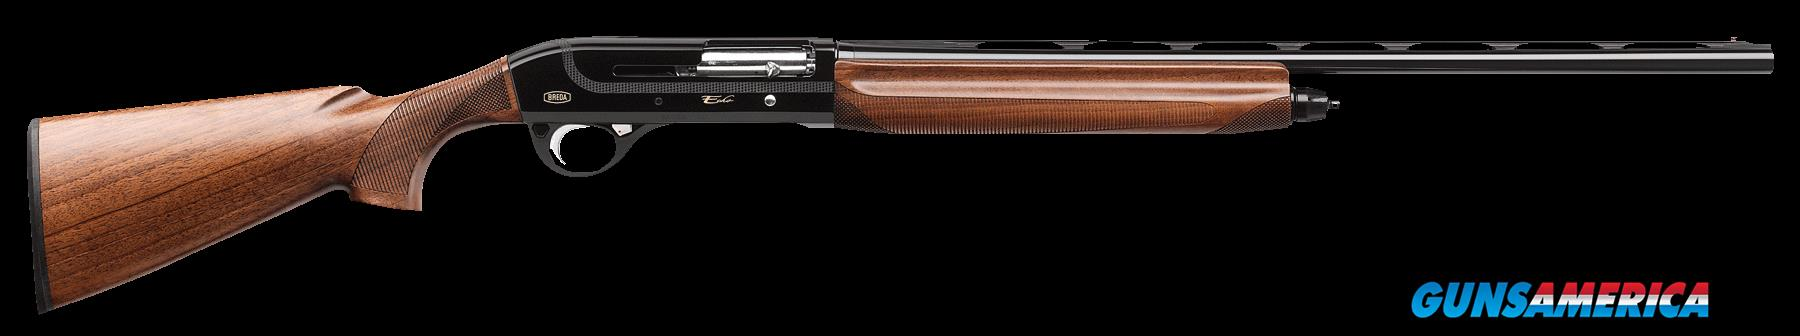 "Breda/Dickinson BRE04 Echo Semi-Automatic 20 Gauge 28"" 3"" Walnut Stk Black Aluminum Alloy Rcvr  Guns > Shotguns > B Misc Shotguns"